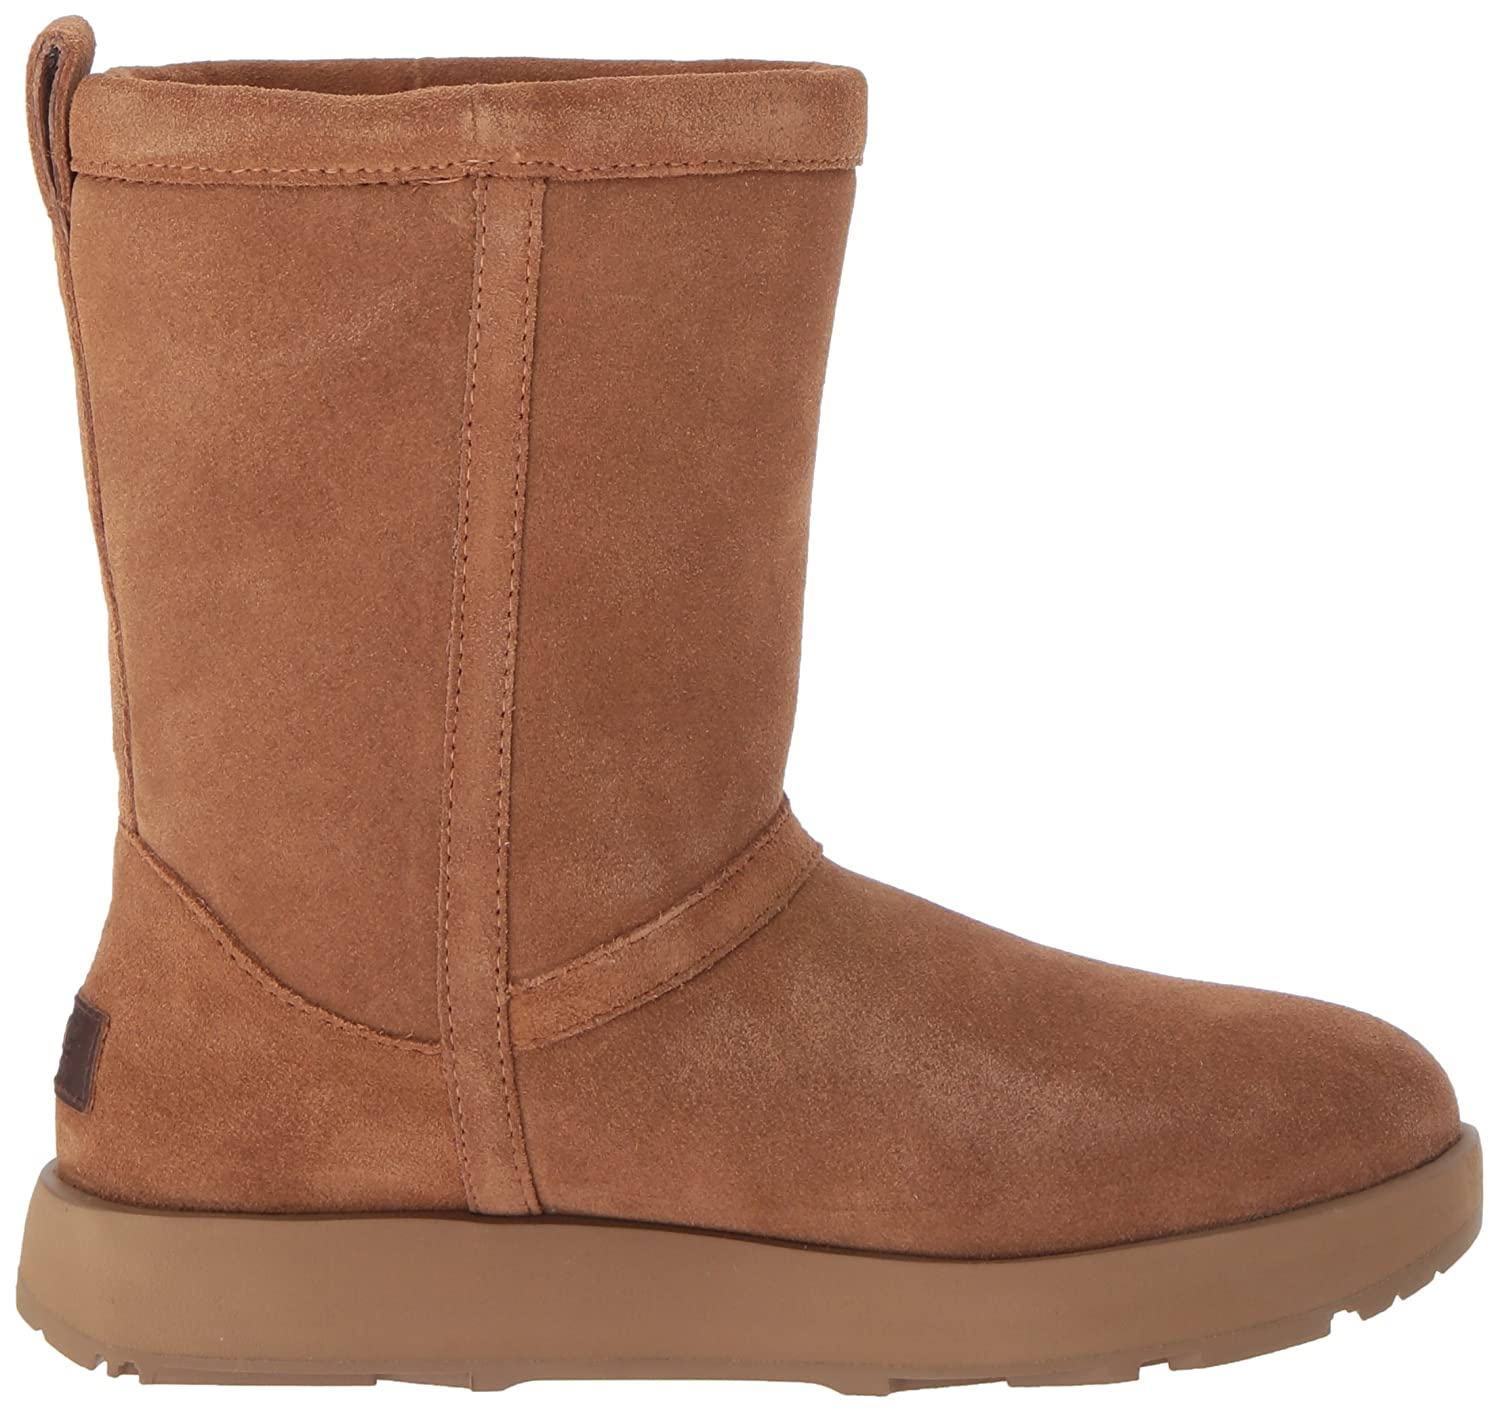 1316c128948 UGG Women's Classic Short Waterproof Snow Boot